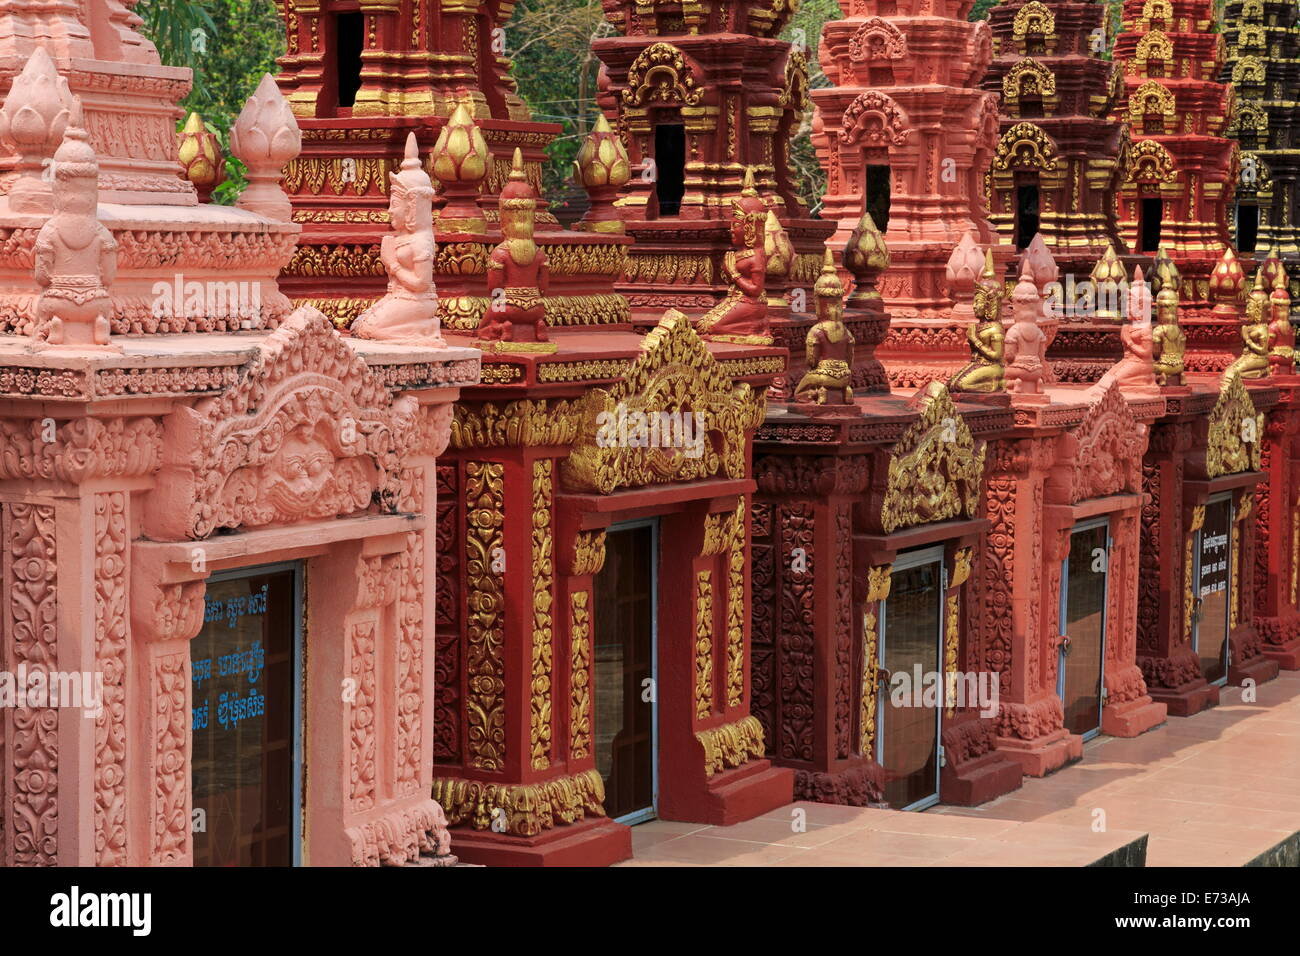 Cemetery in Wat Krom Temple, Sihanoukville Port, Sihanouk Province, Cambodia, Indochina, Southeast Asia, Asia - Stock Image